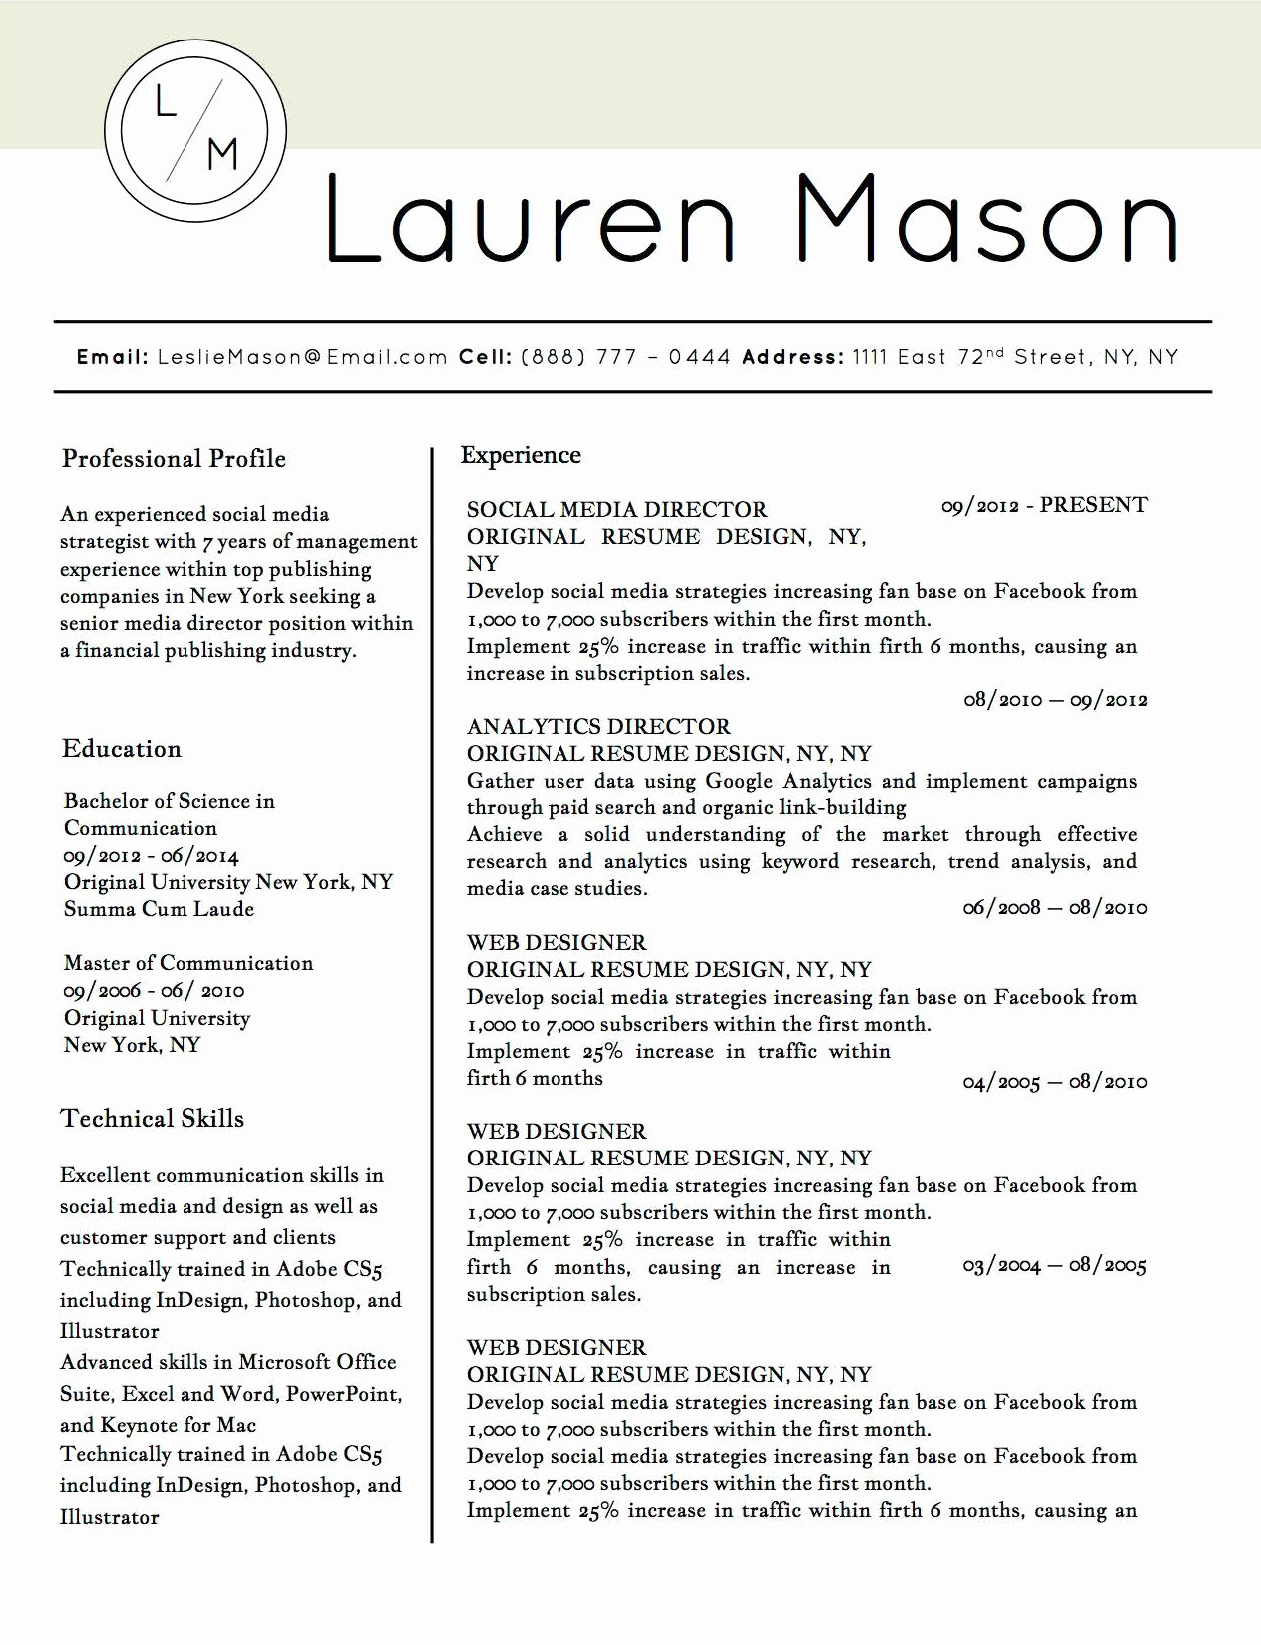 Microsoft Office Word Resume Templates Best Of Job Winning Resume Templates for Microsoft Word & Apple Pages